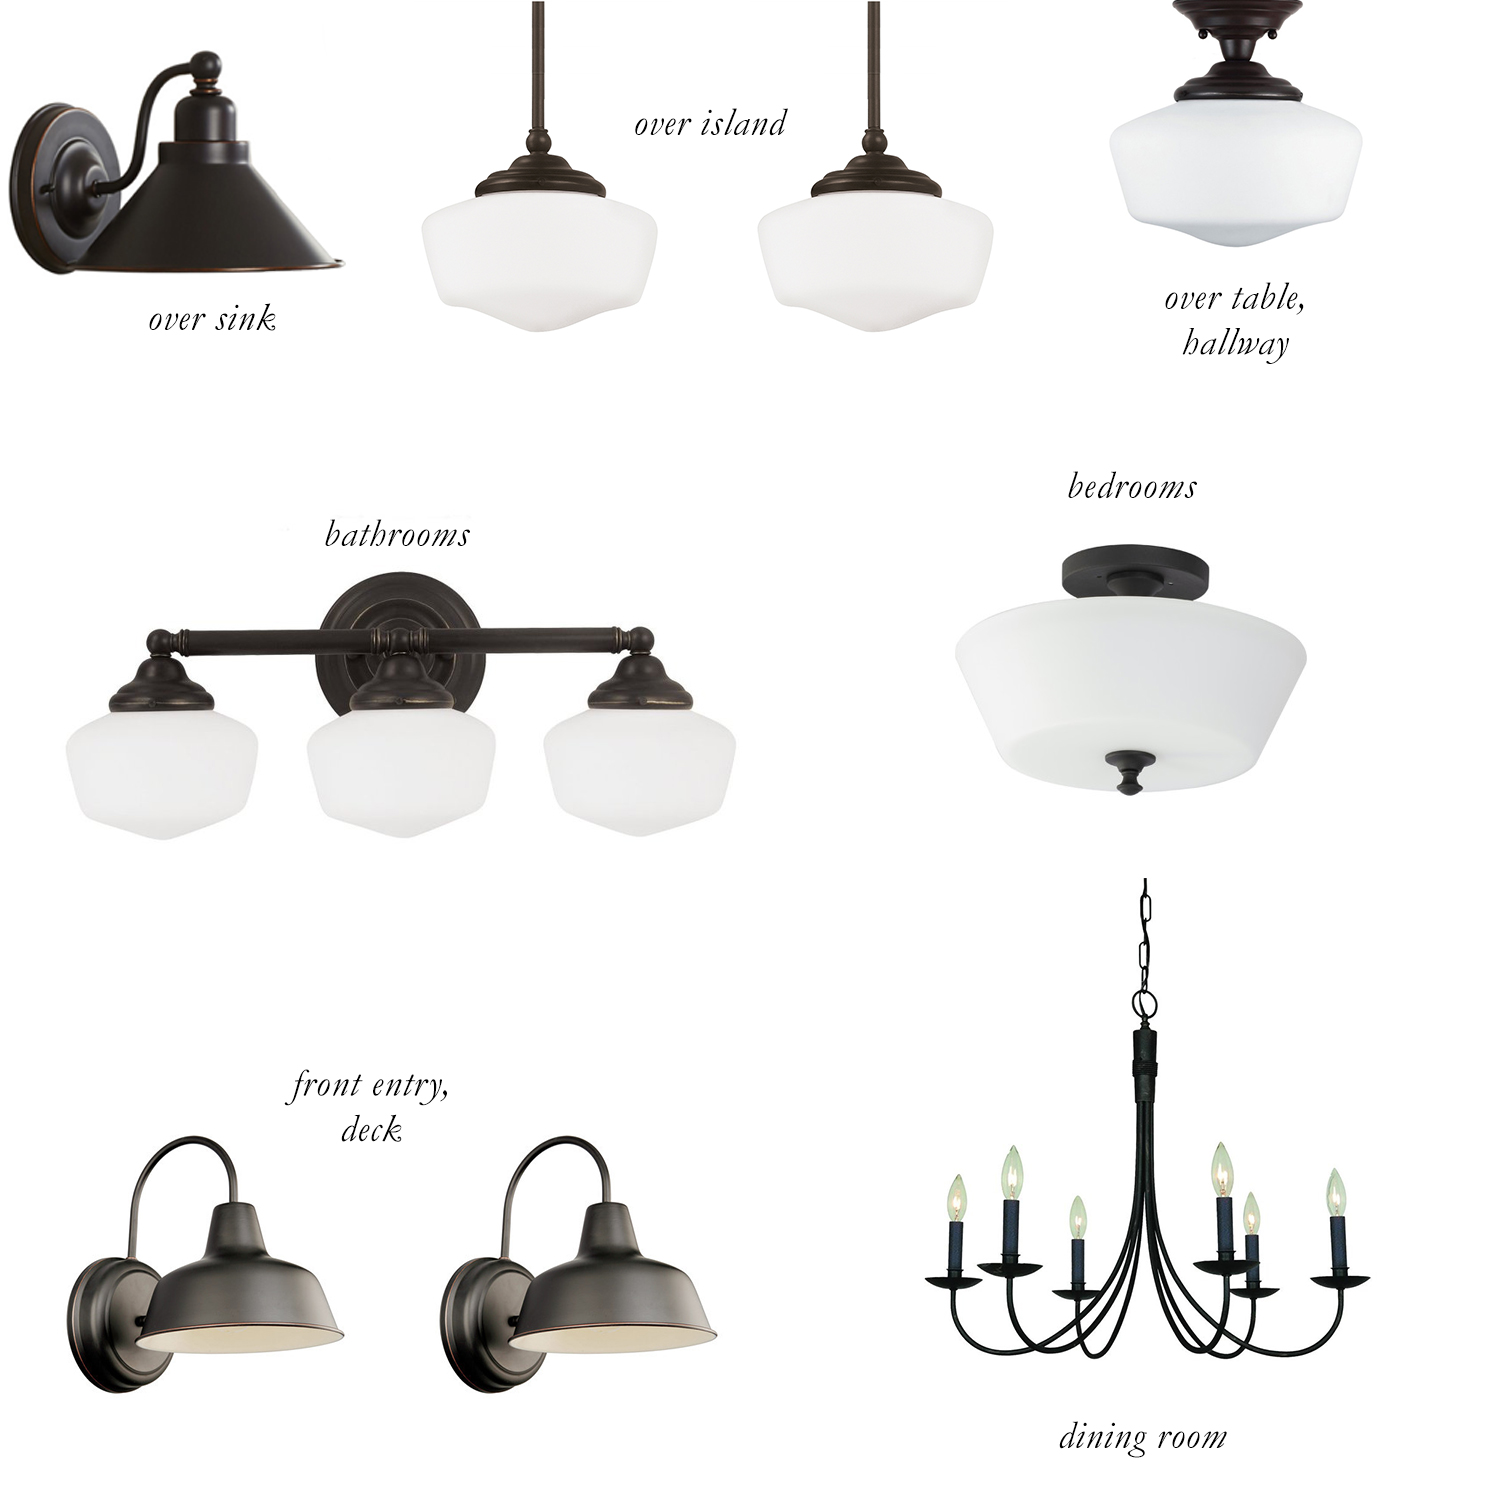 Building Our Home: The Light Fixtures | The Common Day